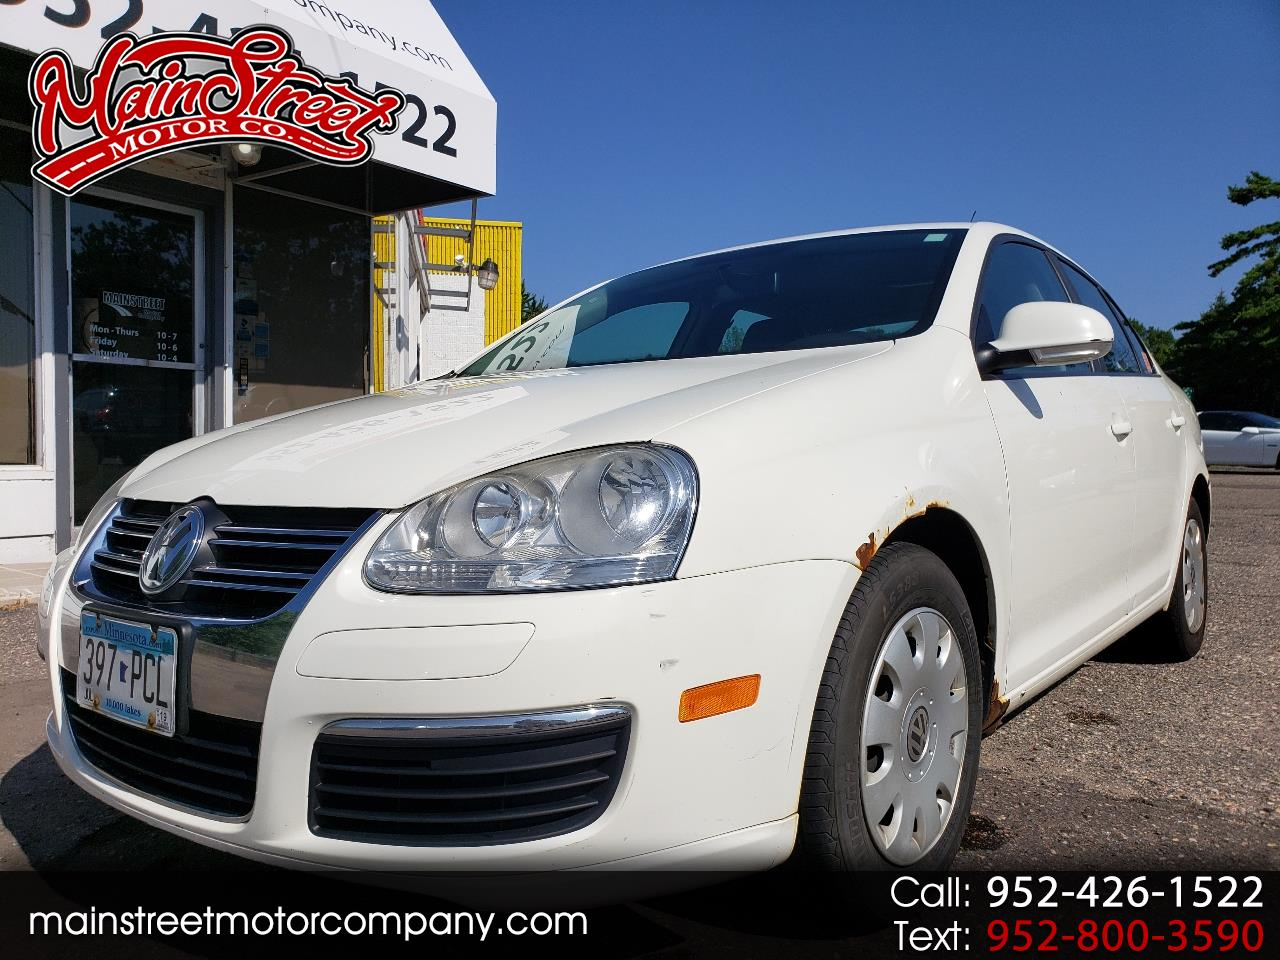 2007 Volkswagen Jetta Sedan 4dr Manual